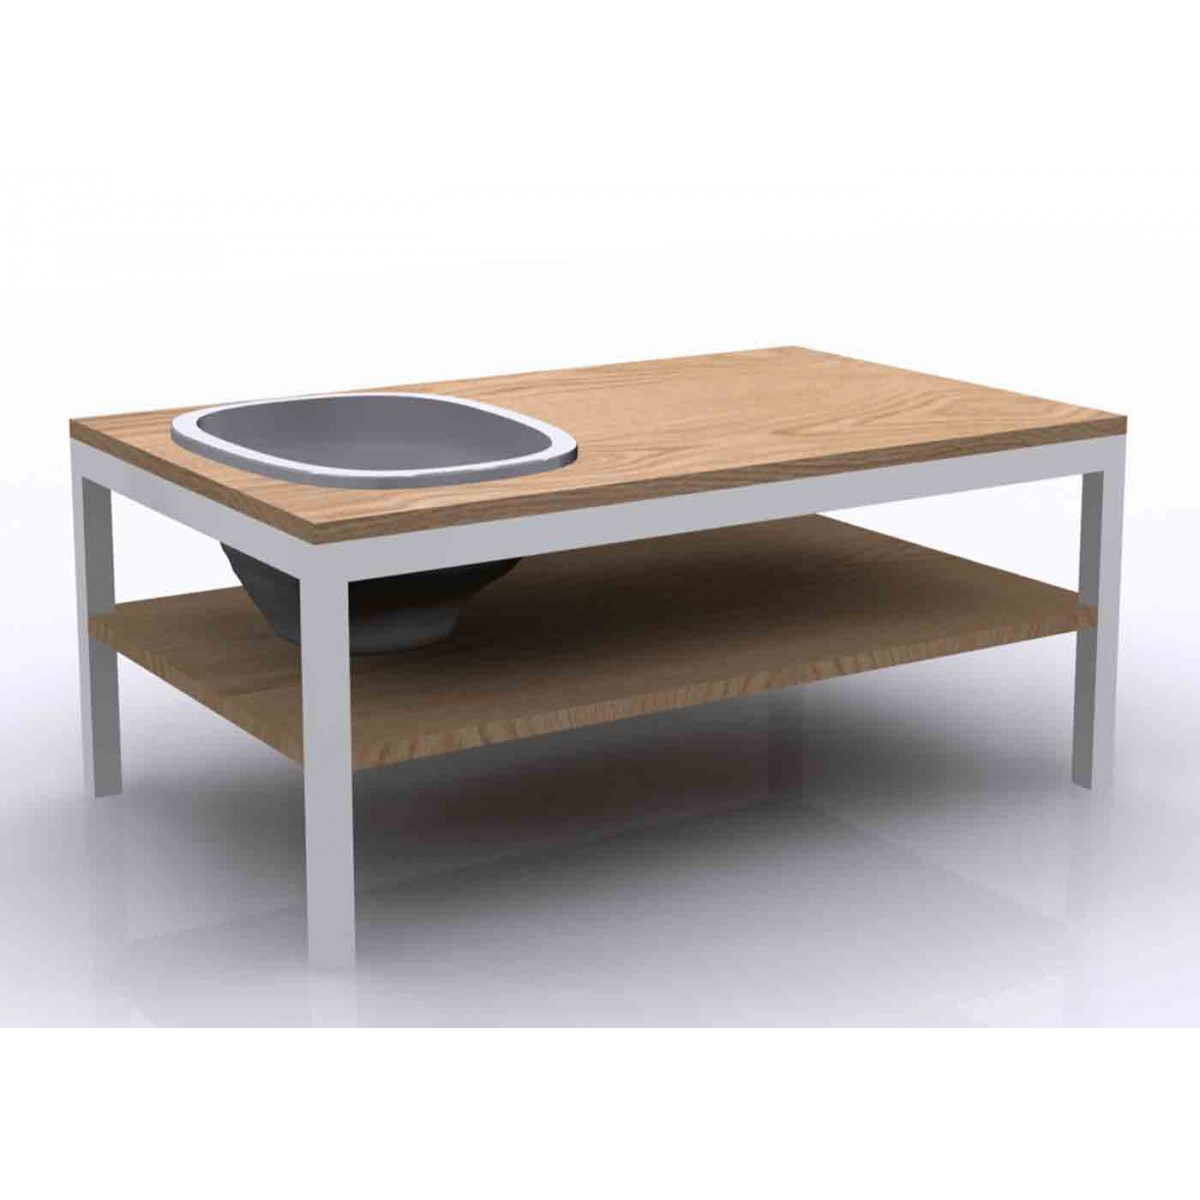 Table basse originale en ch ne et gr s lagune bois par bellila - Table basse bois contemporaine ...